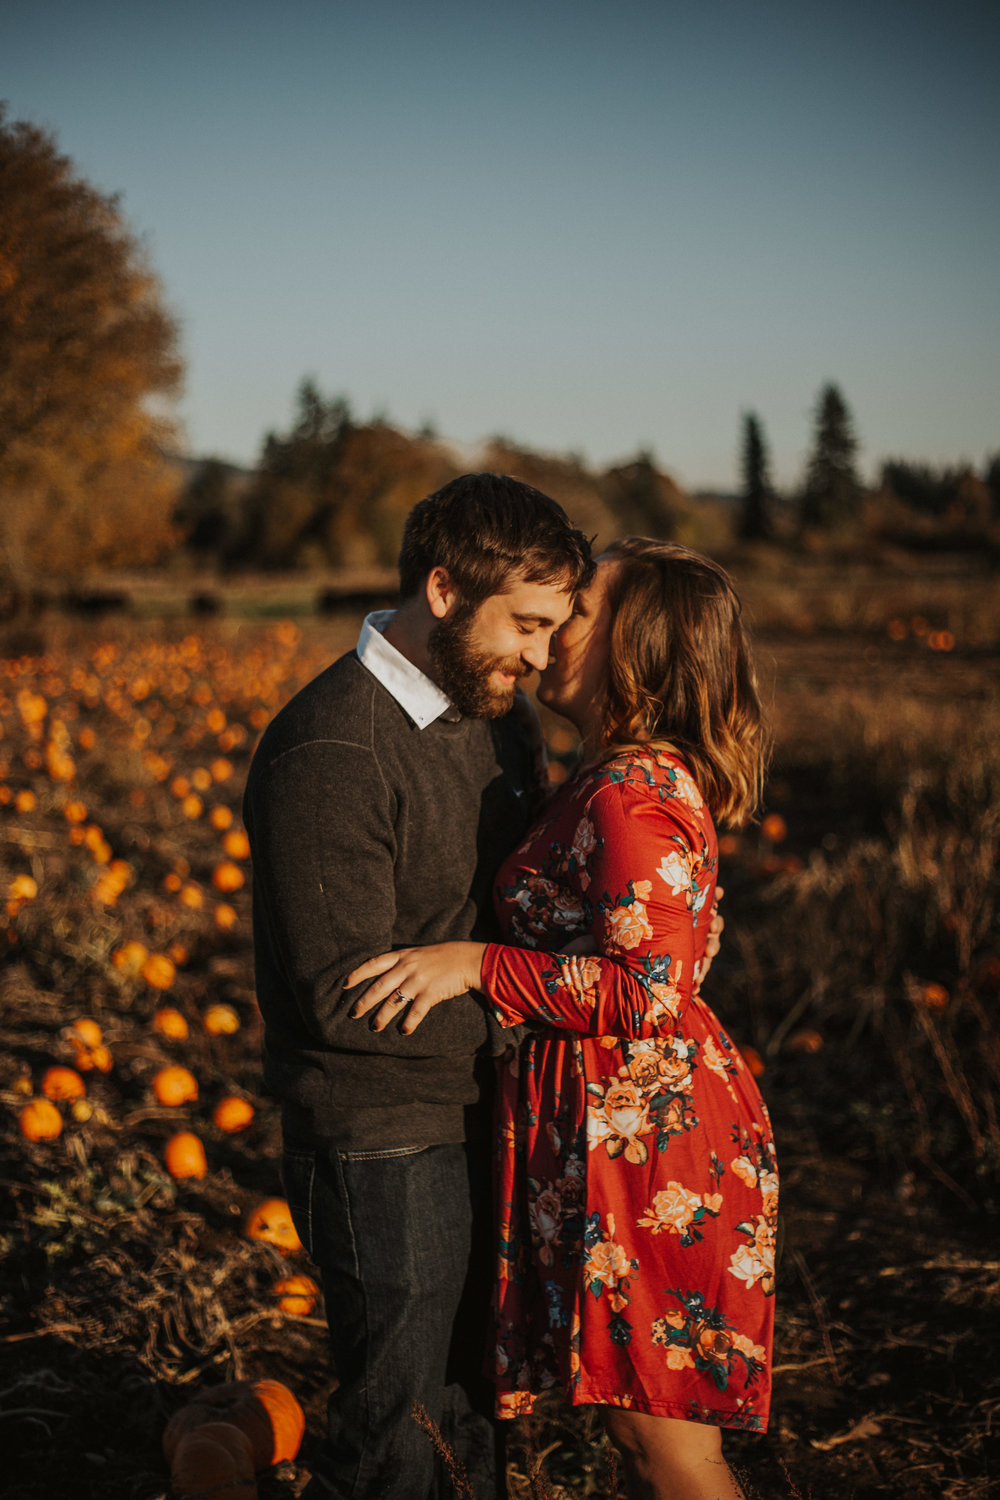 August-Muse-images-taylor-kelsey-vancouver-pumpkin-patch-washington-engagement-15.jpg